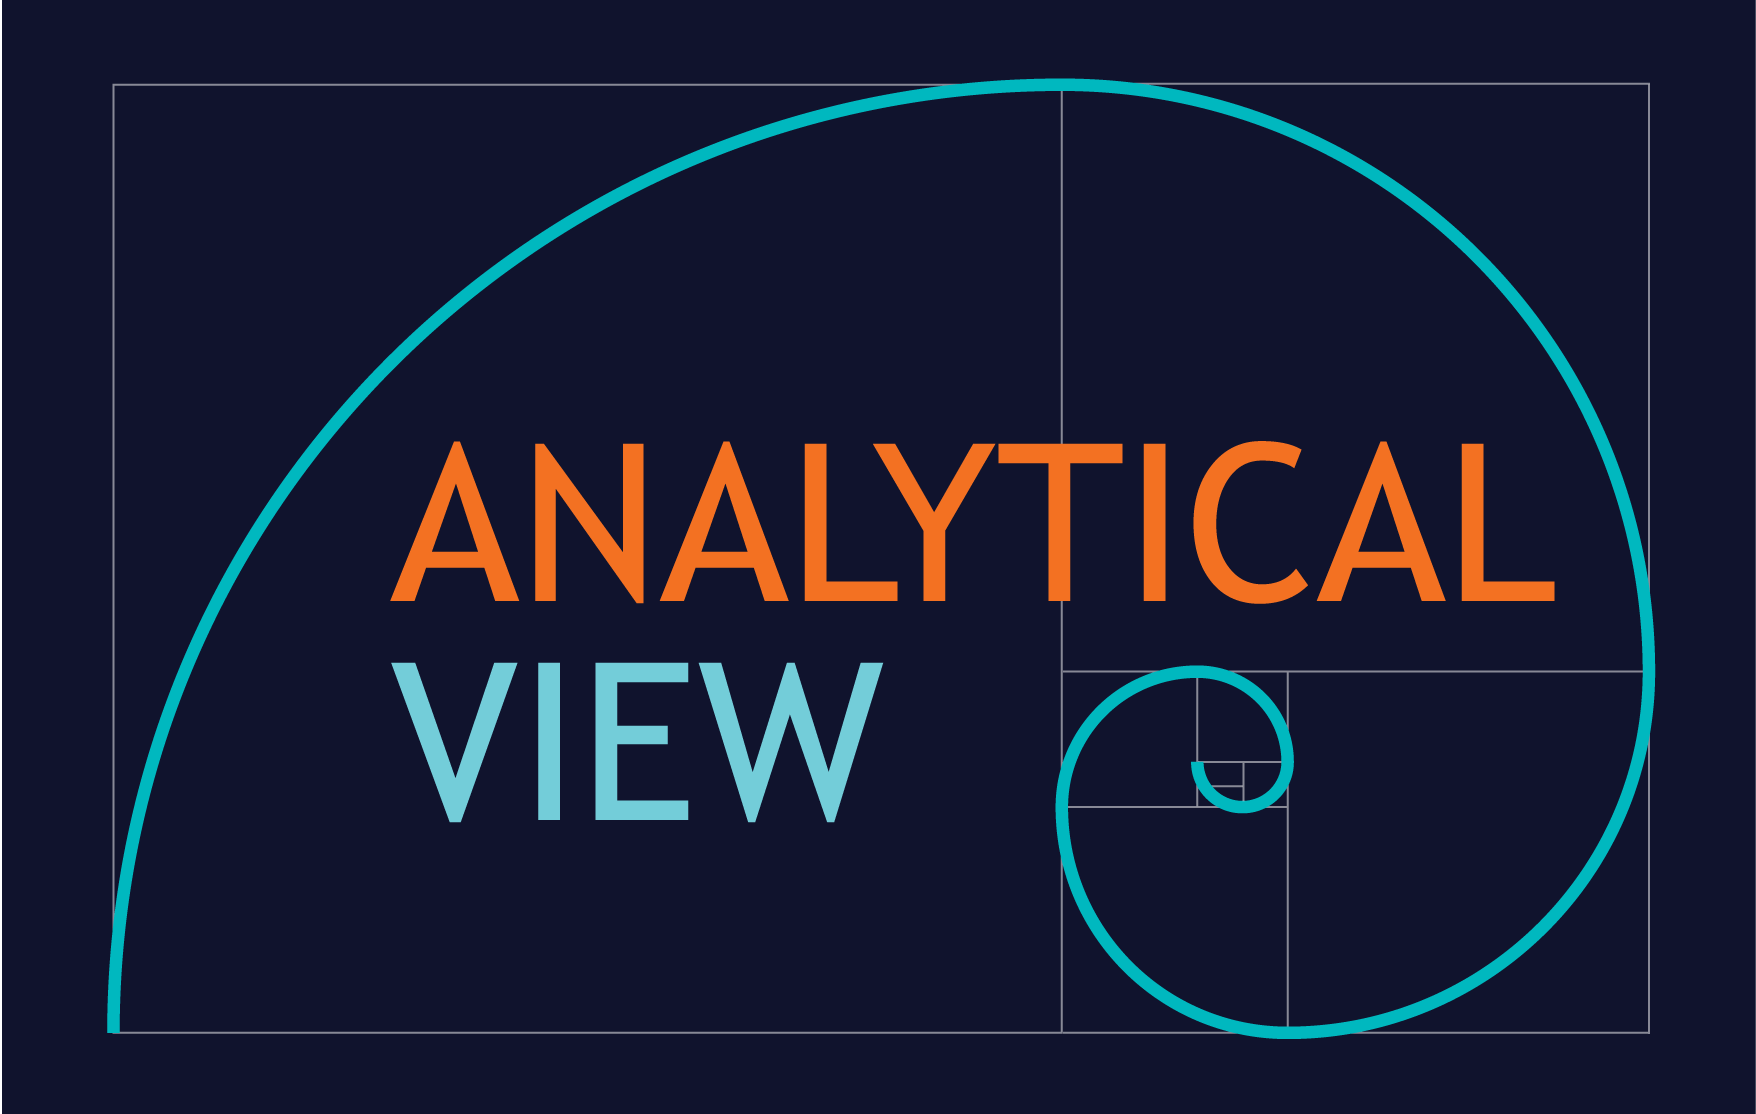 Analytical View